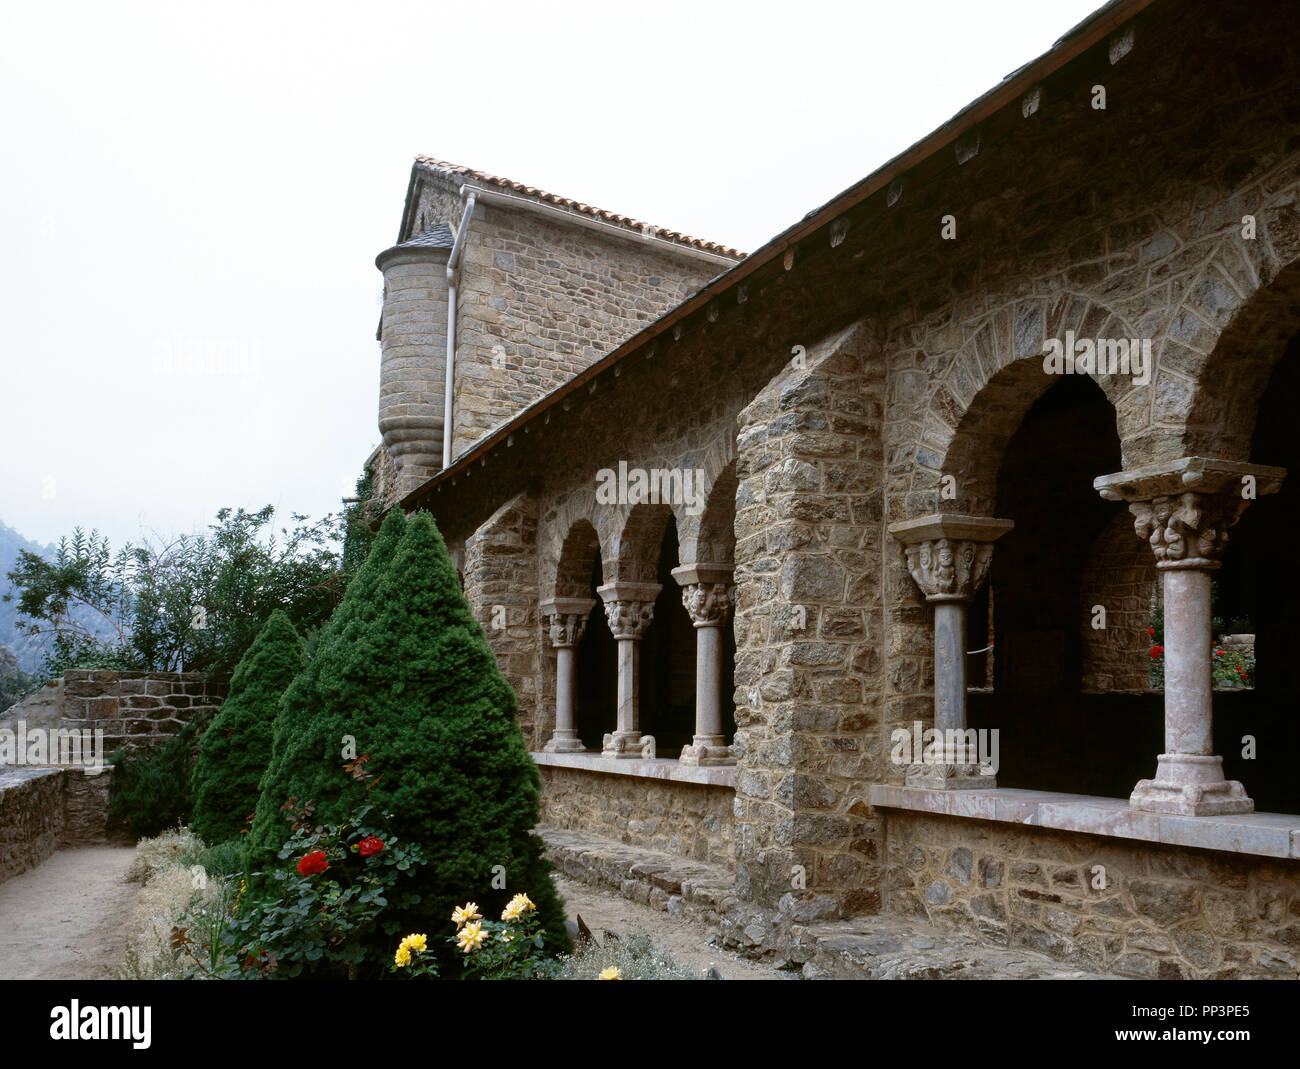 France. Pyrenees-Orientales. Languedoc-Roussillon region. Abbey of Saint-Martin-du-Canigou. Monastery built in 1009, on Canigou mountain. It was built from 1005-1009 by Guifred, Count of Cerdanya in Romanesque style. Architectural detail of the  Cloister. Restoration of 1900-1920. - Stock Image